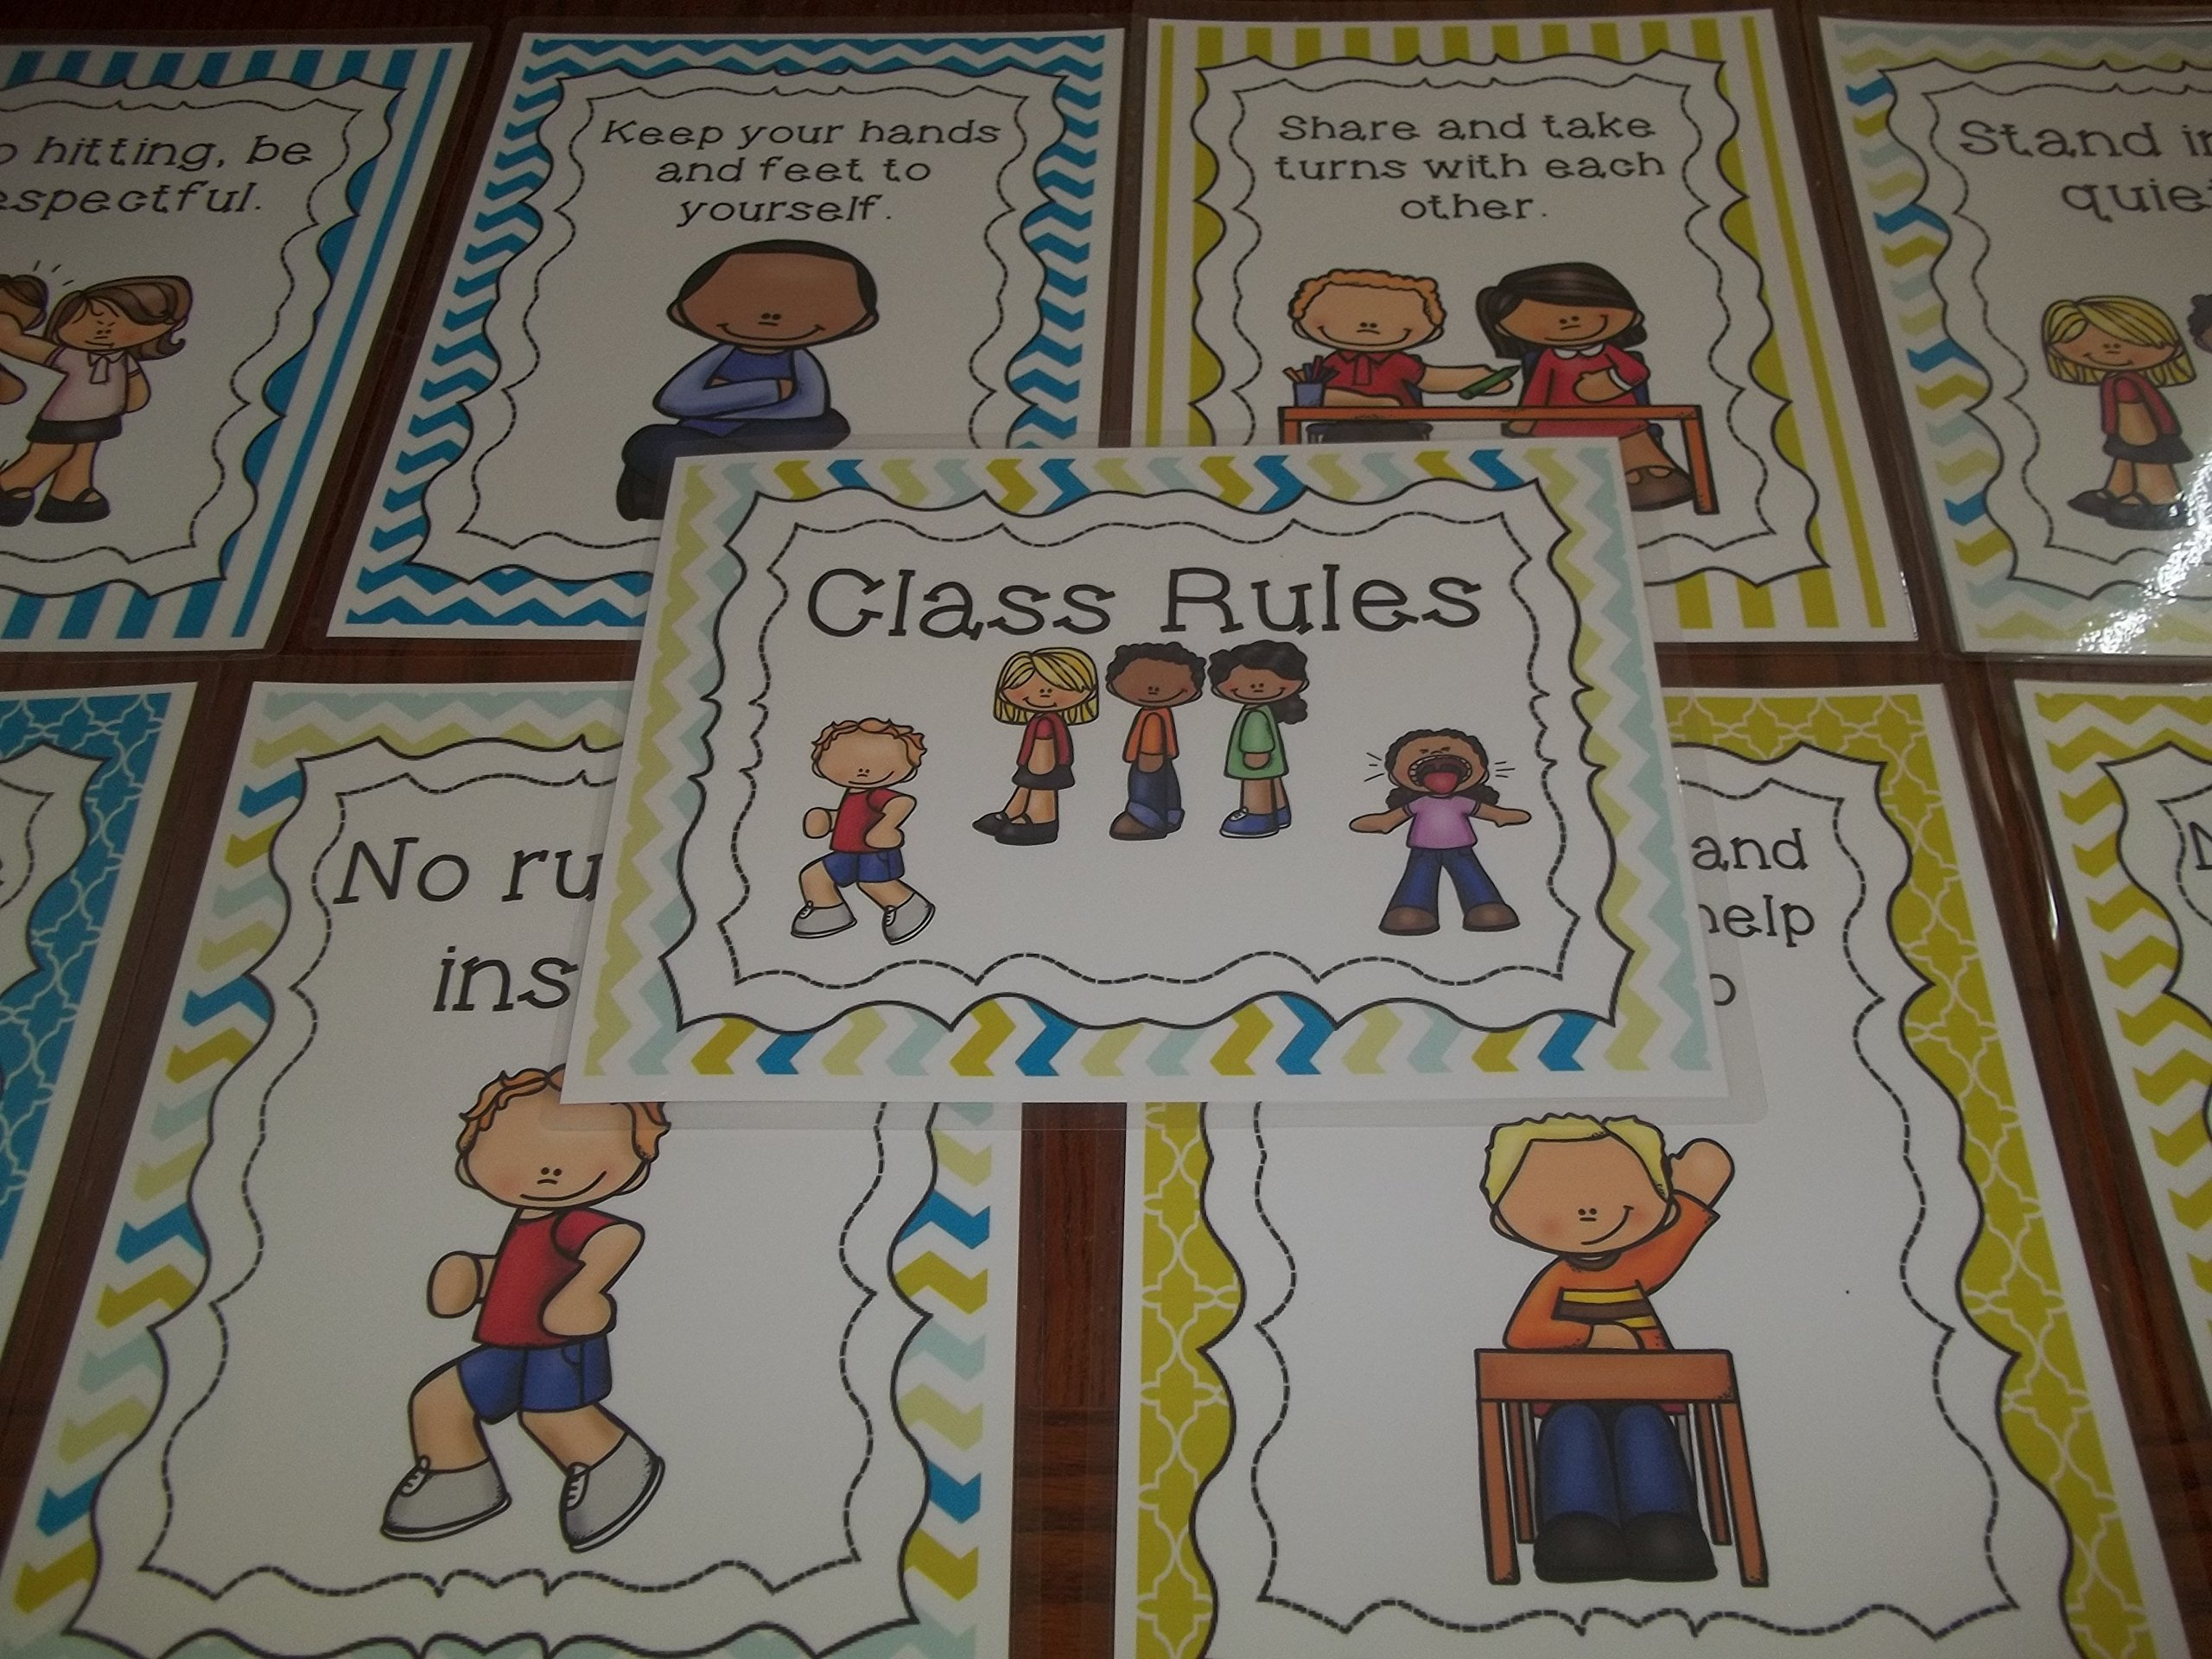 9 Laminated Class Rules Teacher Classroom Signs. 8.5 inches x 11 inches. Class Organization Charts. by Teach at Daycare